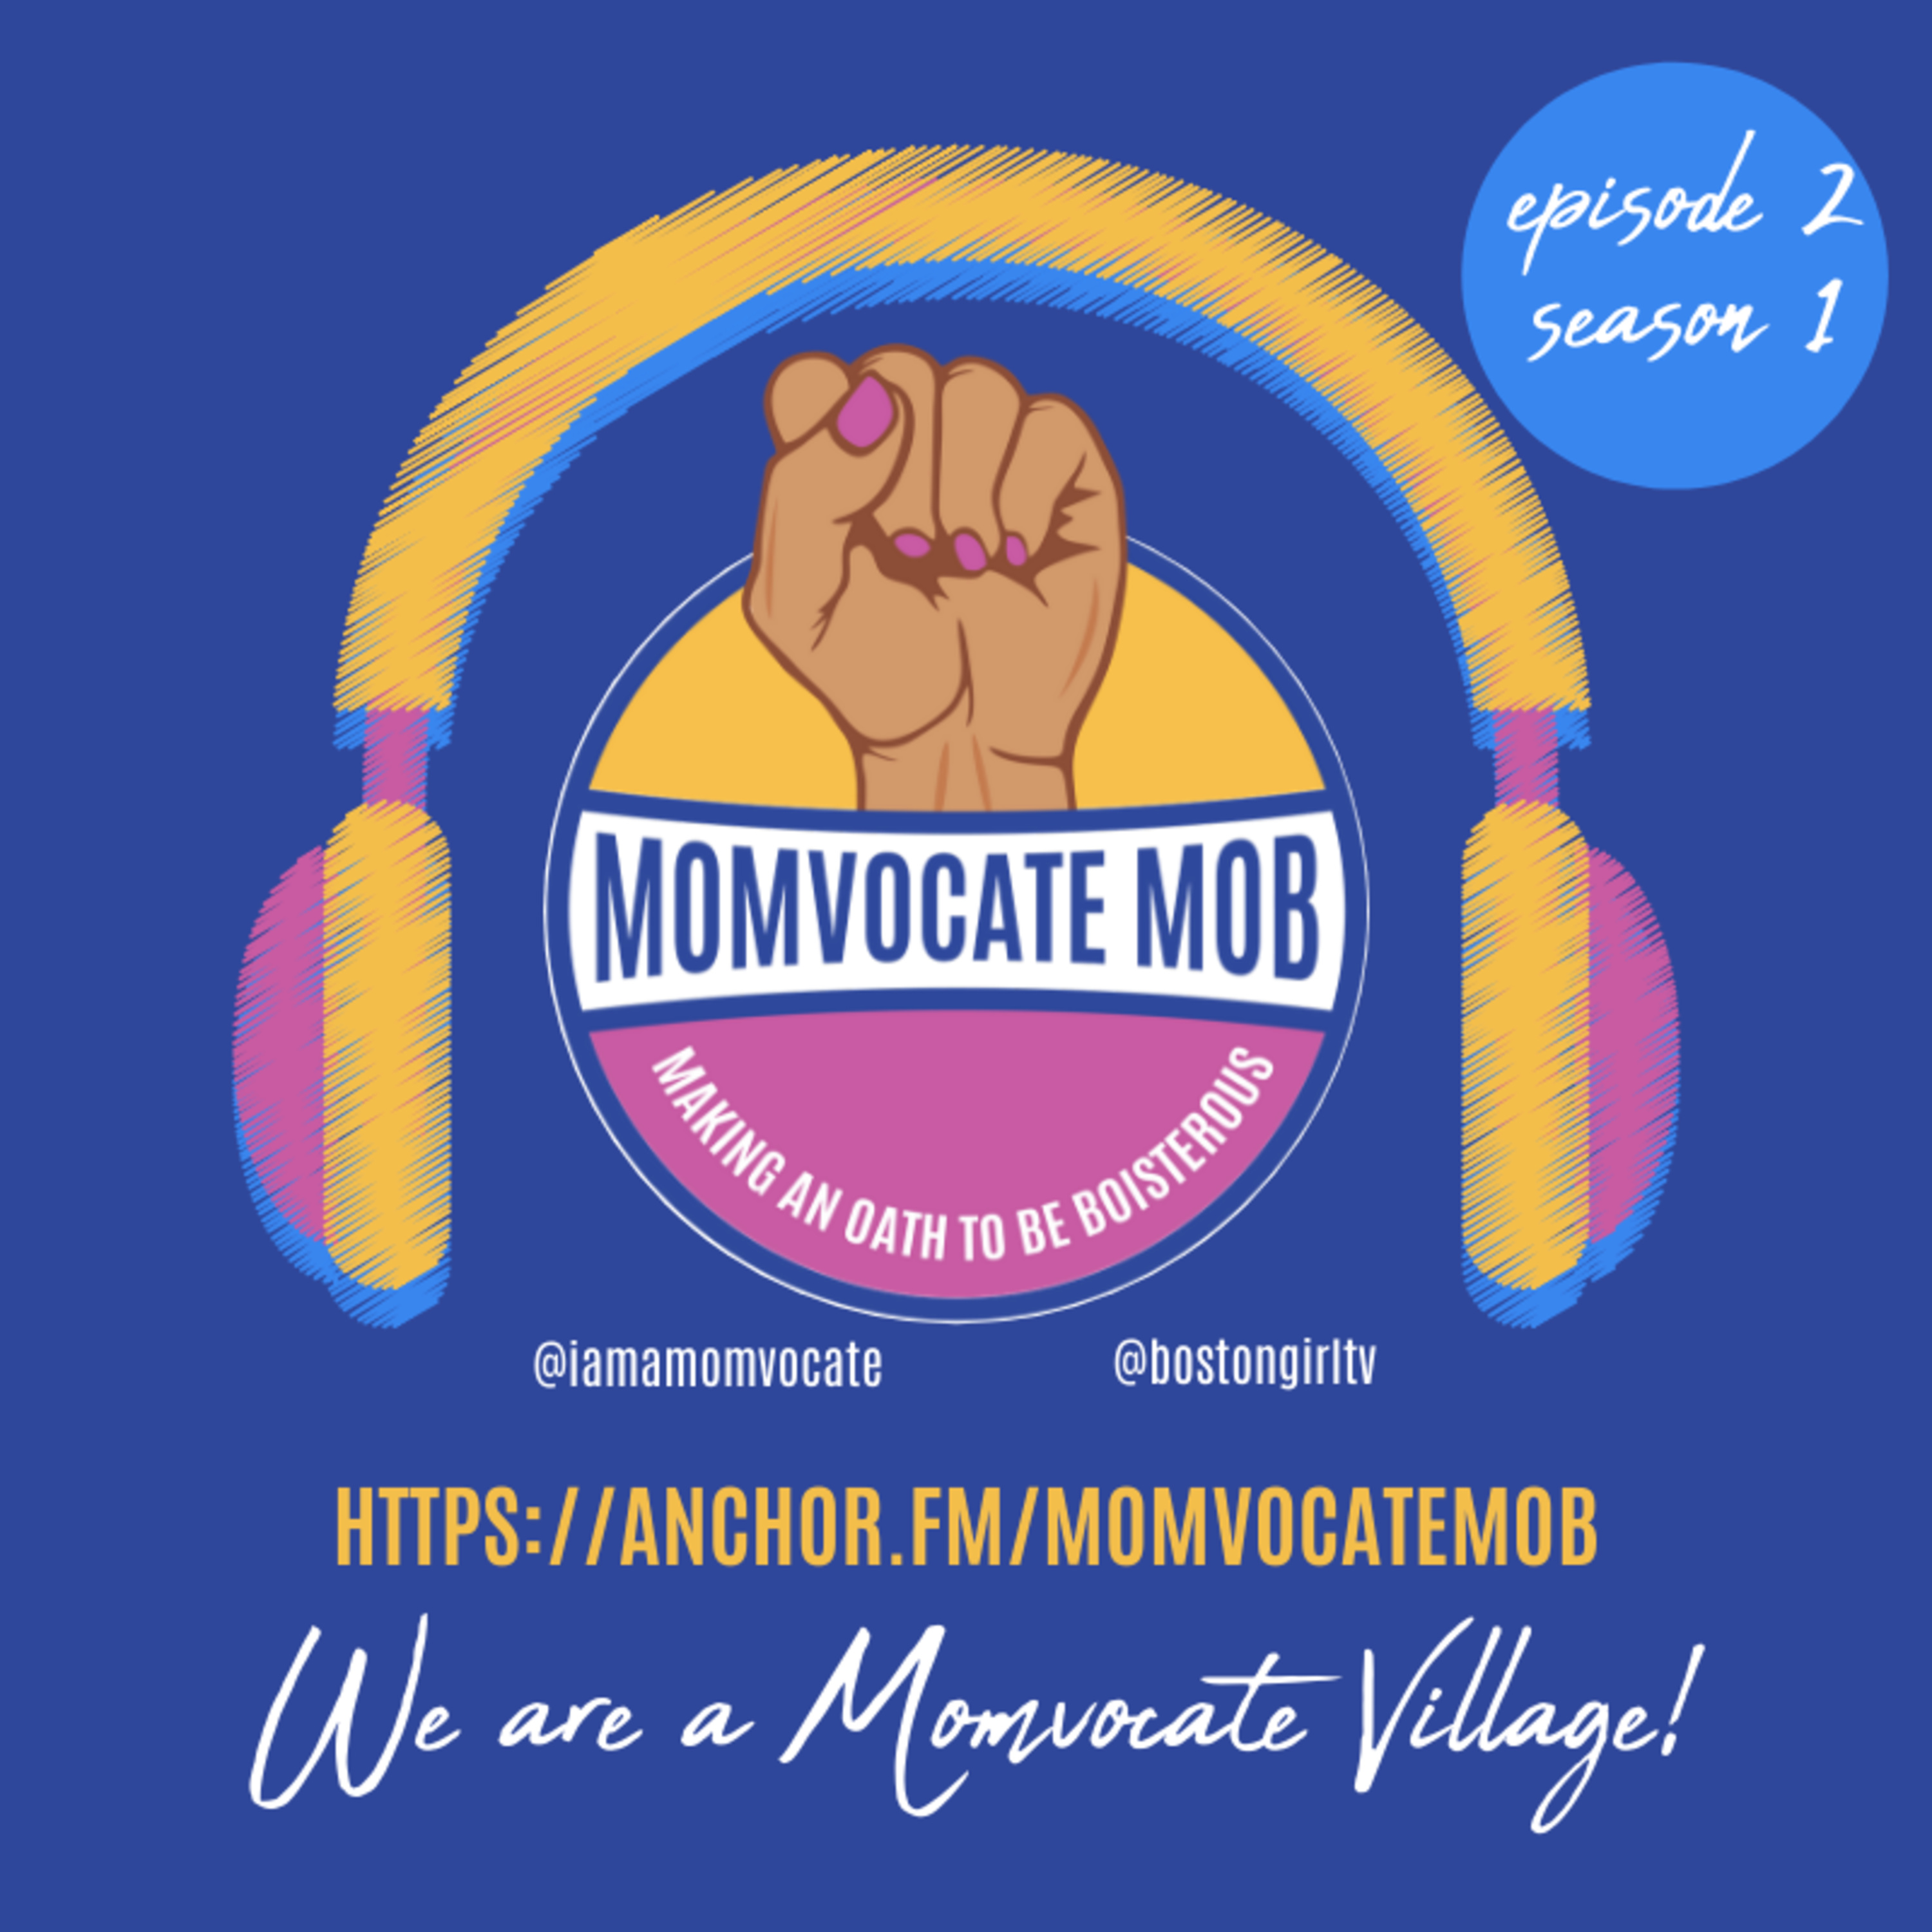 Momvocate Mob Podcast Episode 2 - We are a Momvocate Village!